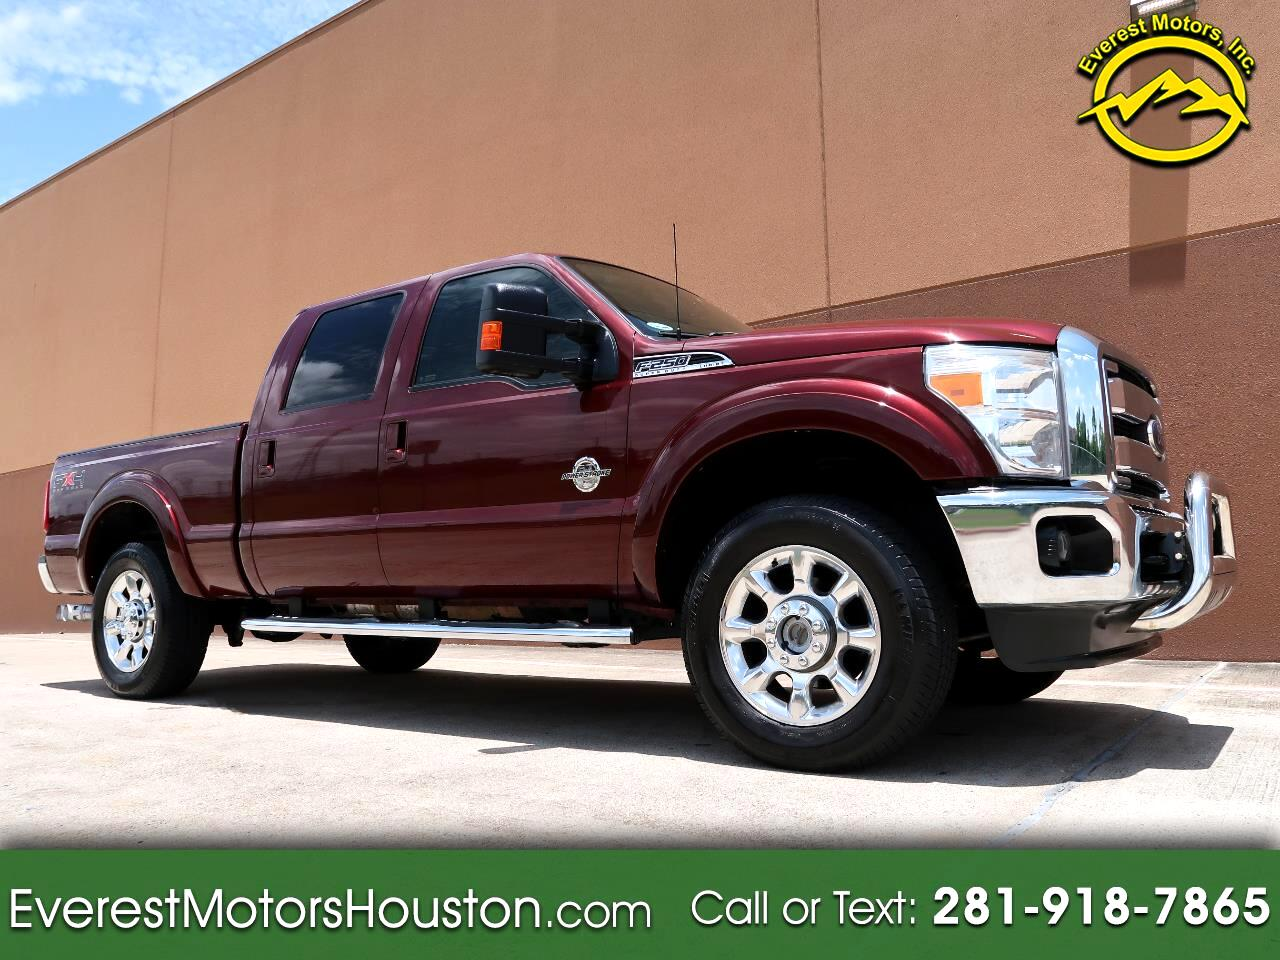 2011 Ford F-250 SD LARIAT CREW CAB SHORT BED 4WD DIESEL NAV CAM ROOF